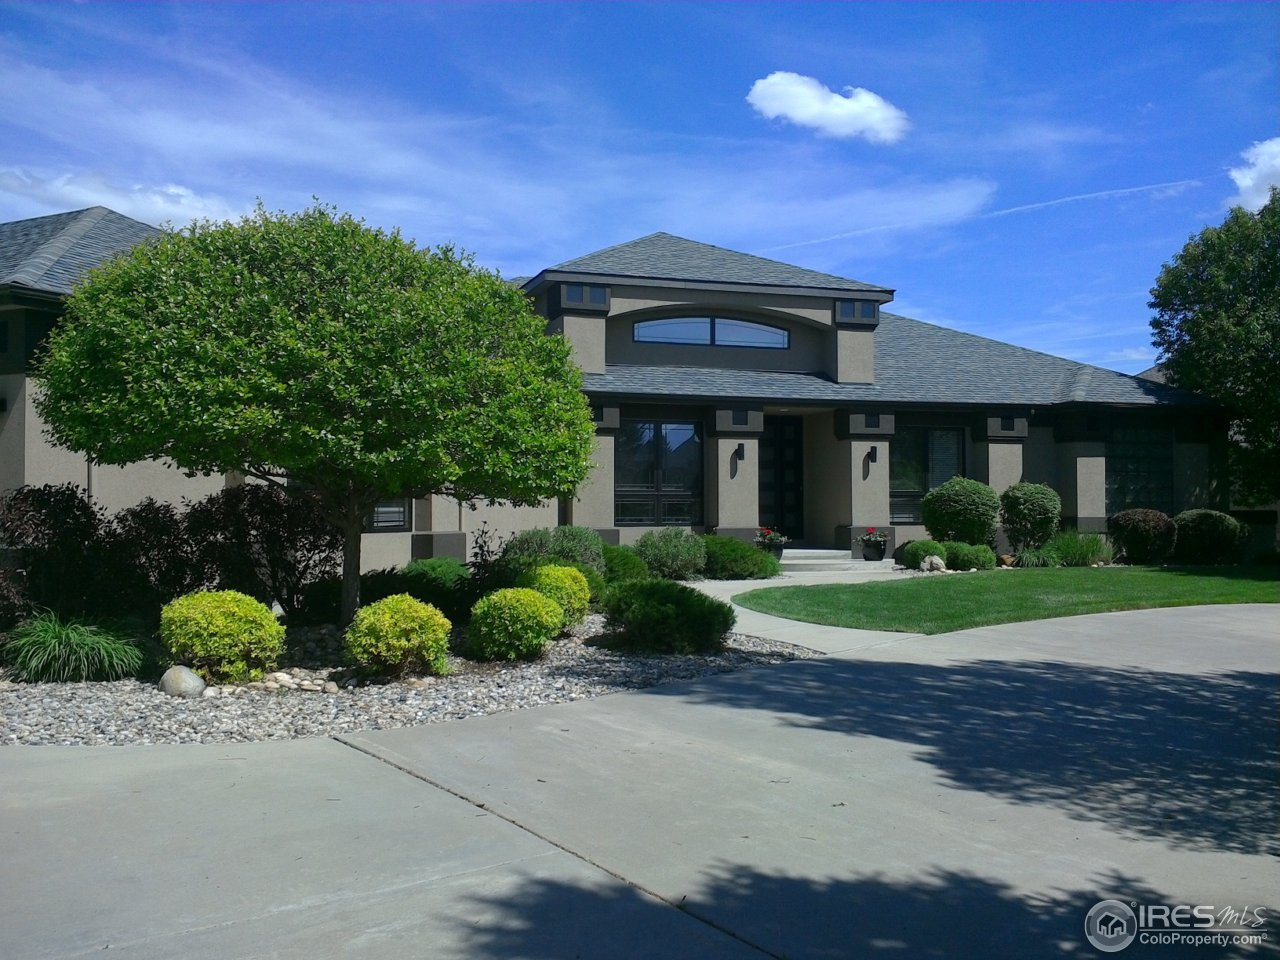 7940 Eagle Ranch Rd, Fort Collins, CO 80528